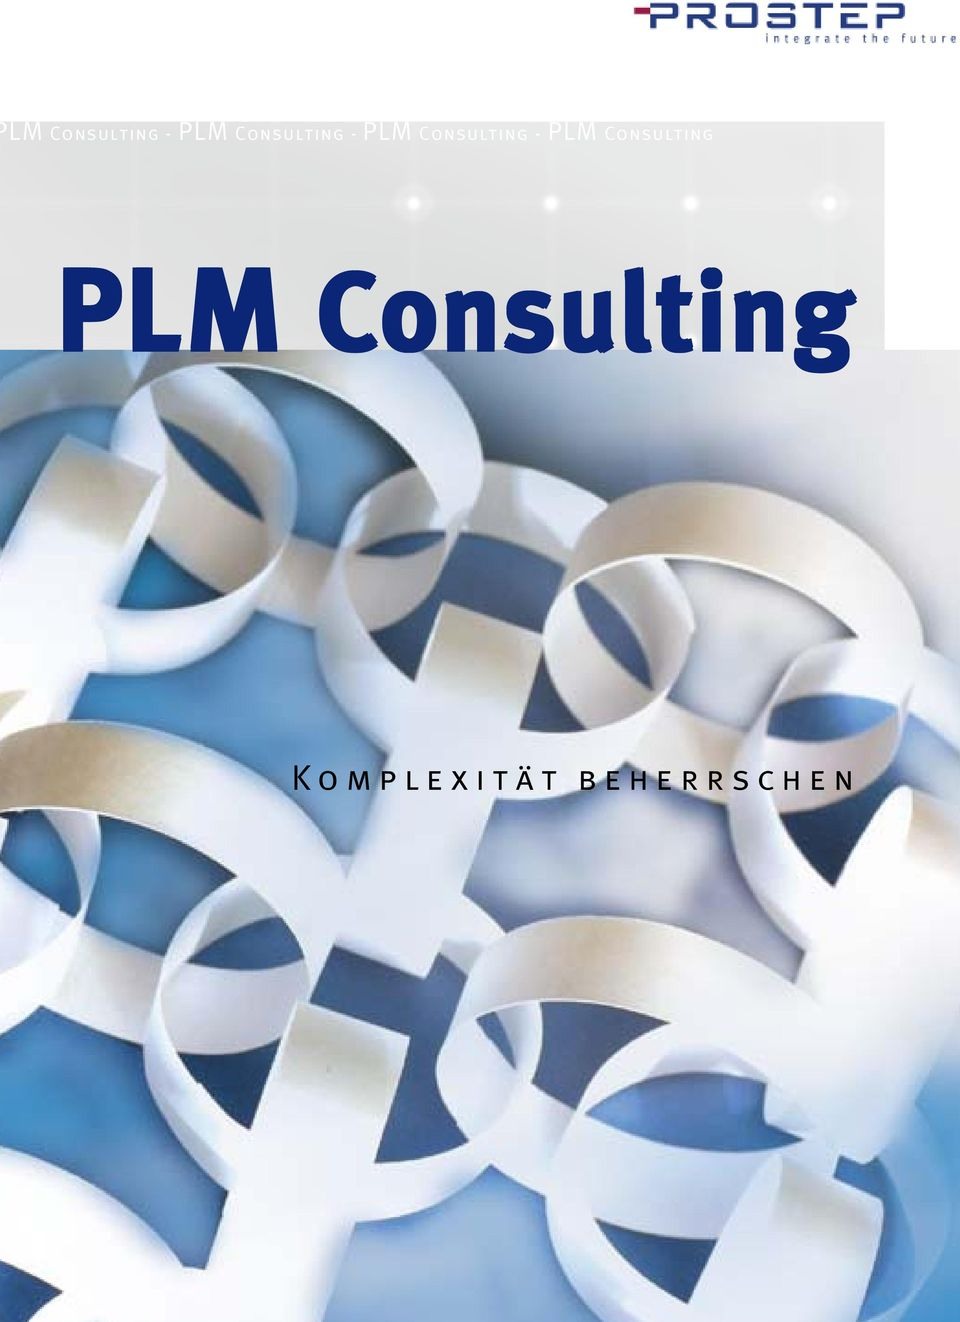 PLM LM Consulting